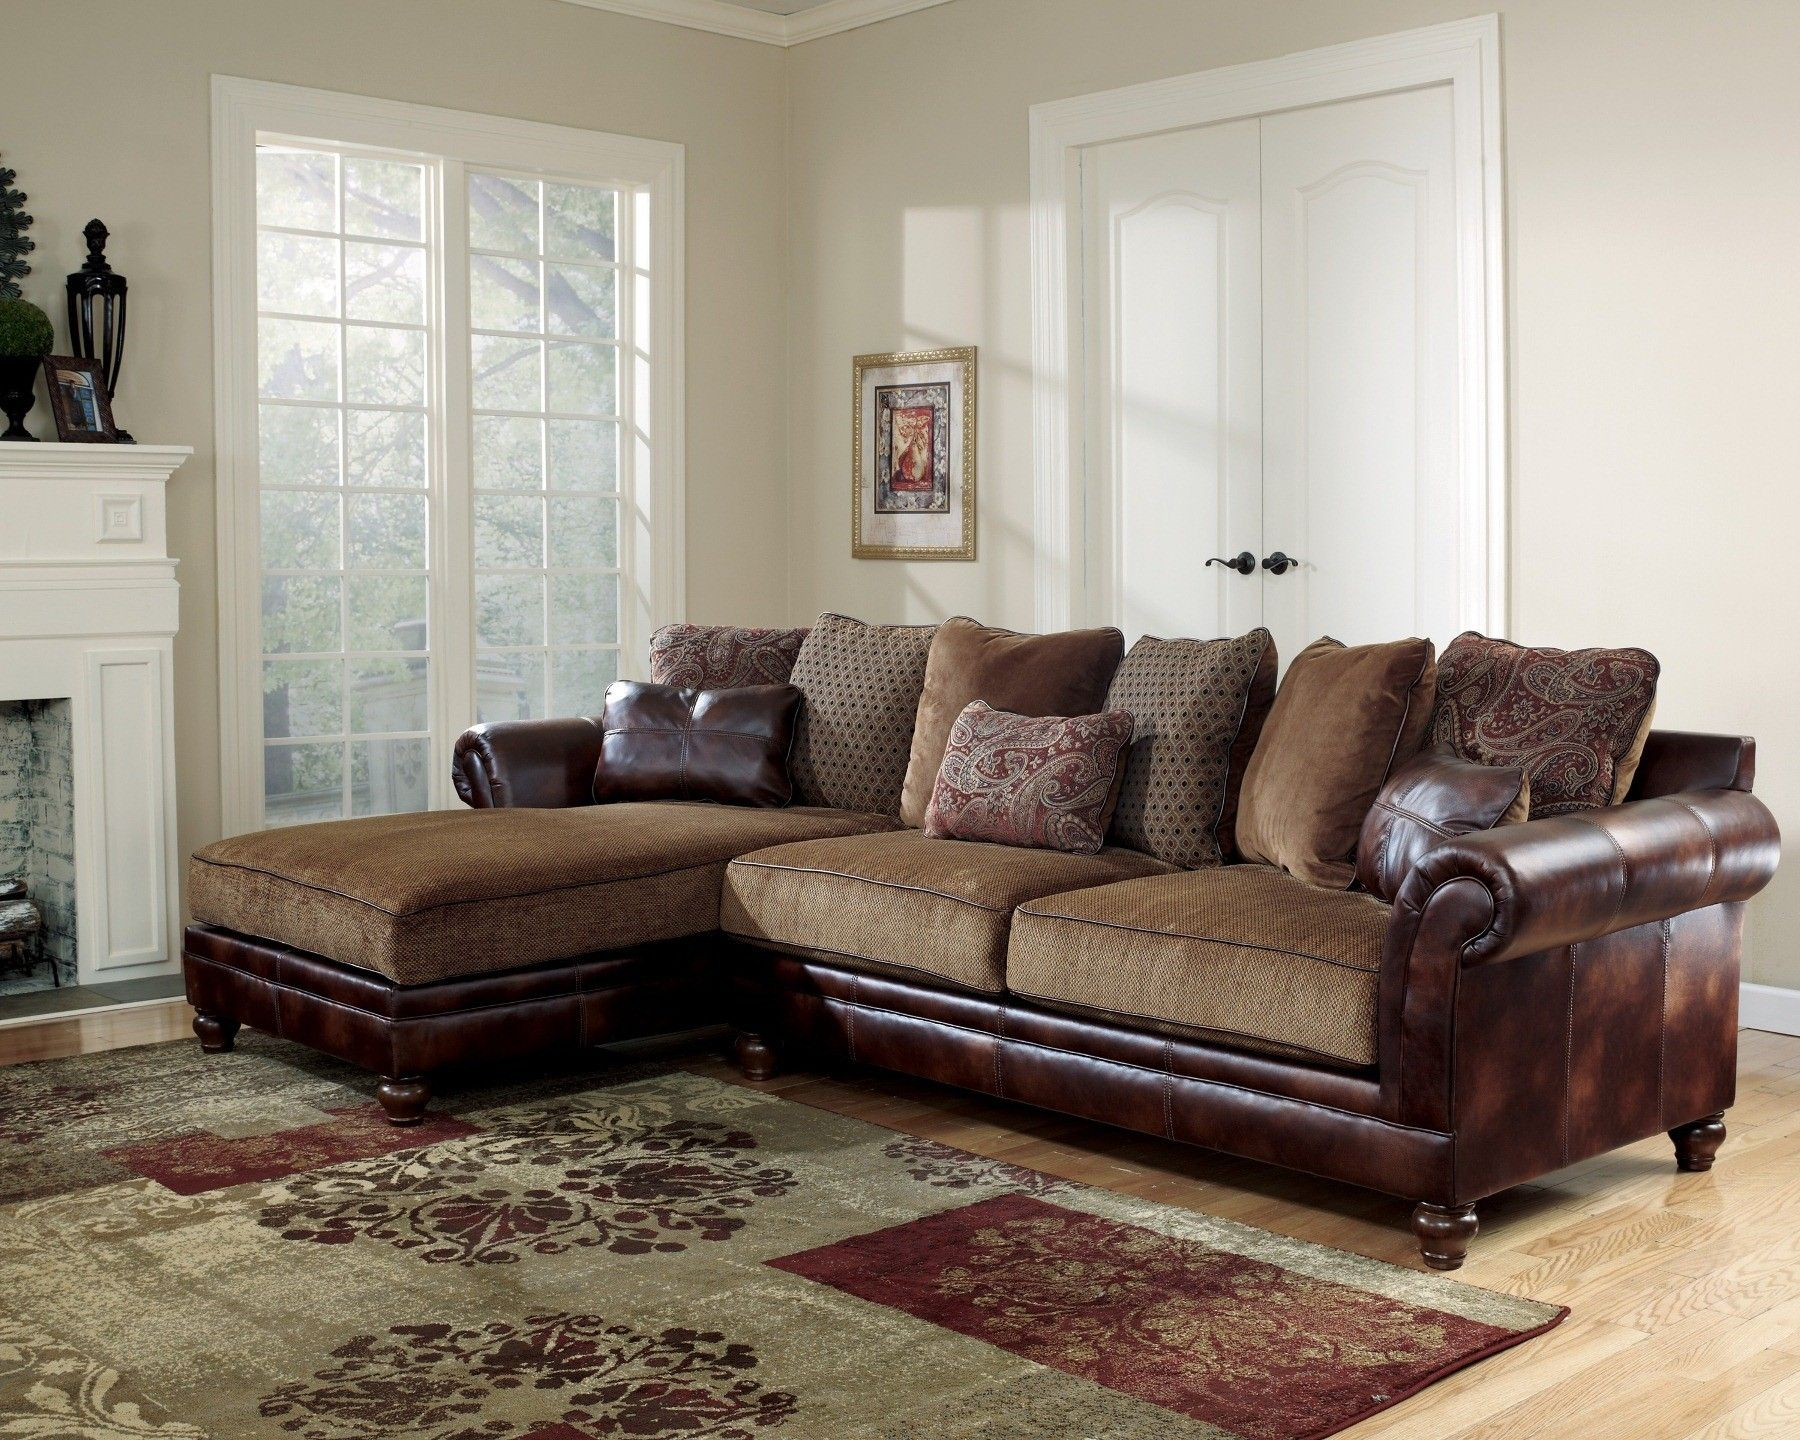 Hartwell Canyon Left Corner Chaise Sectional Furniture Living Room Sectional Rooms Home Decor